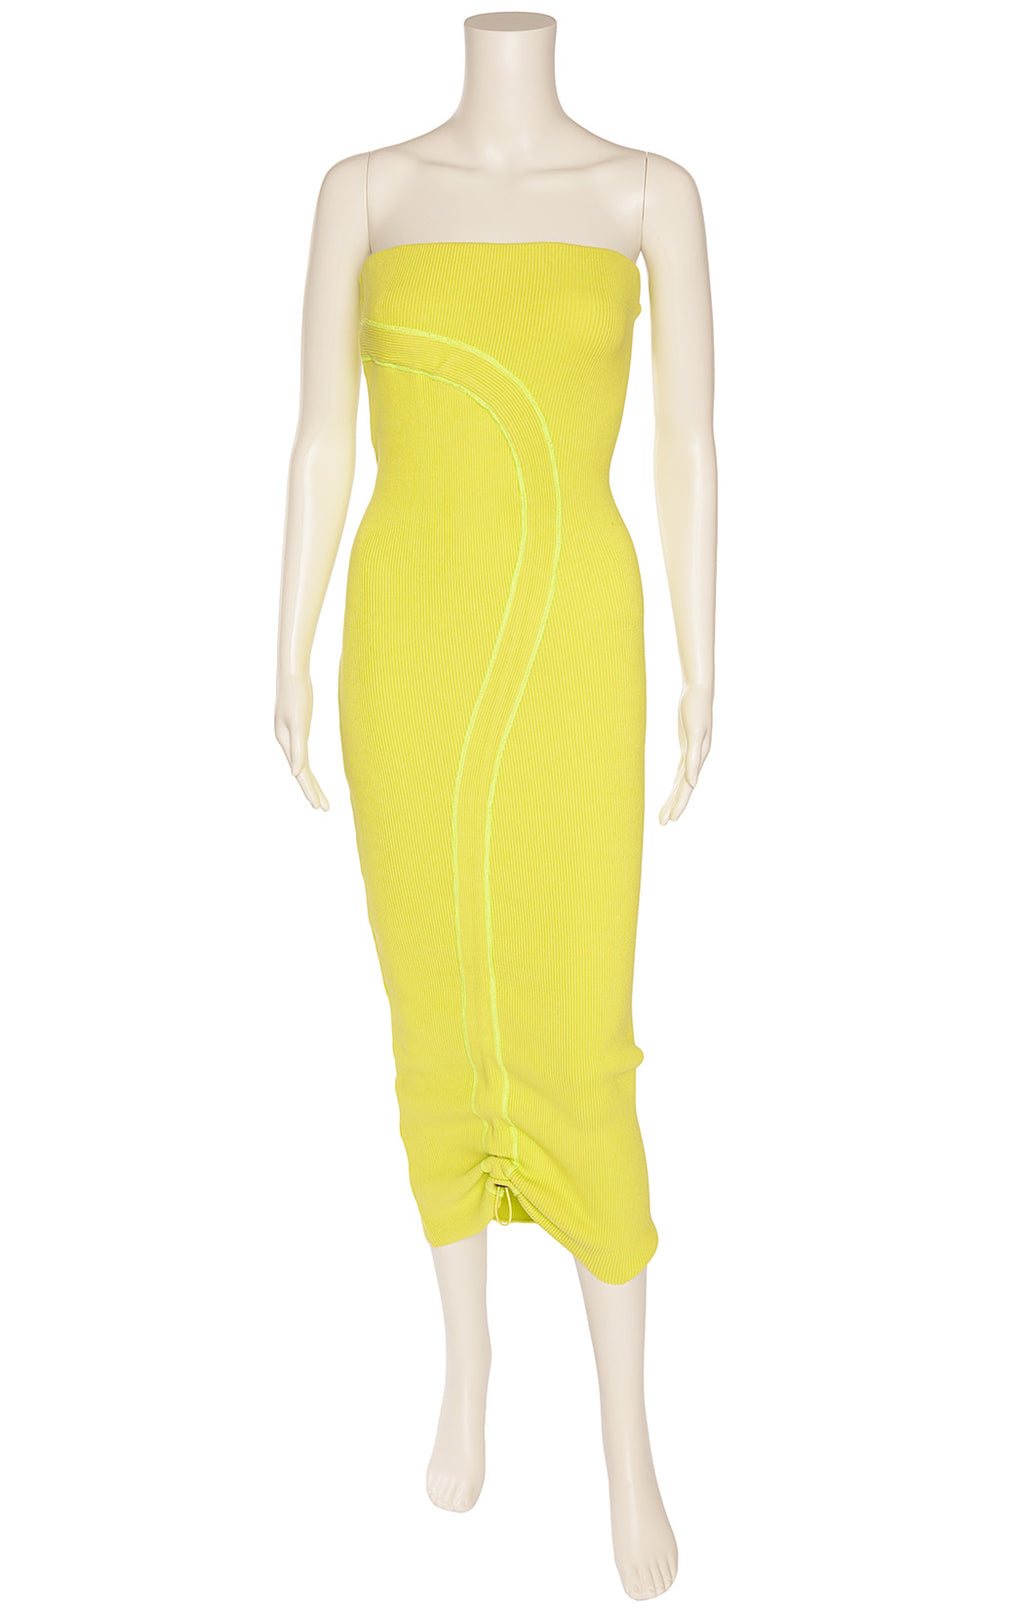 Neon green strapless ribbed kit like, form fitting midi dress with front design